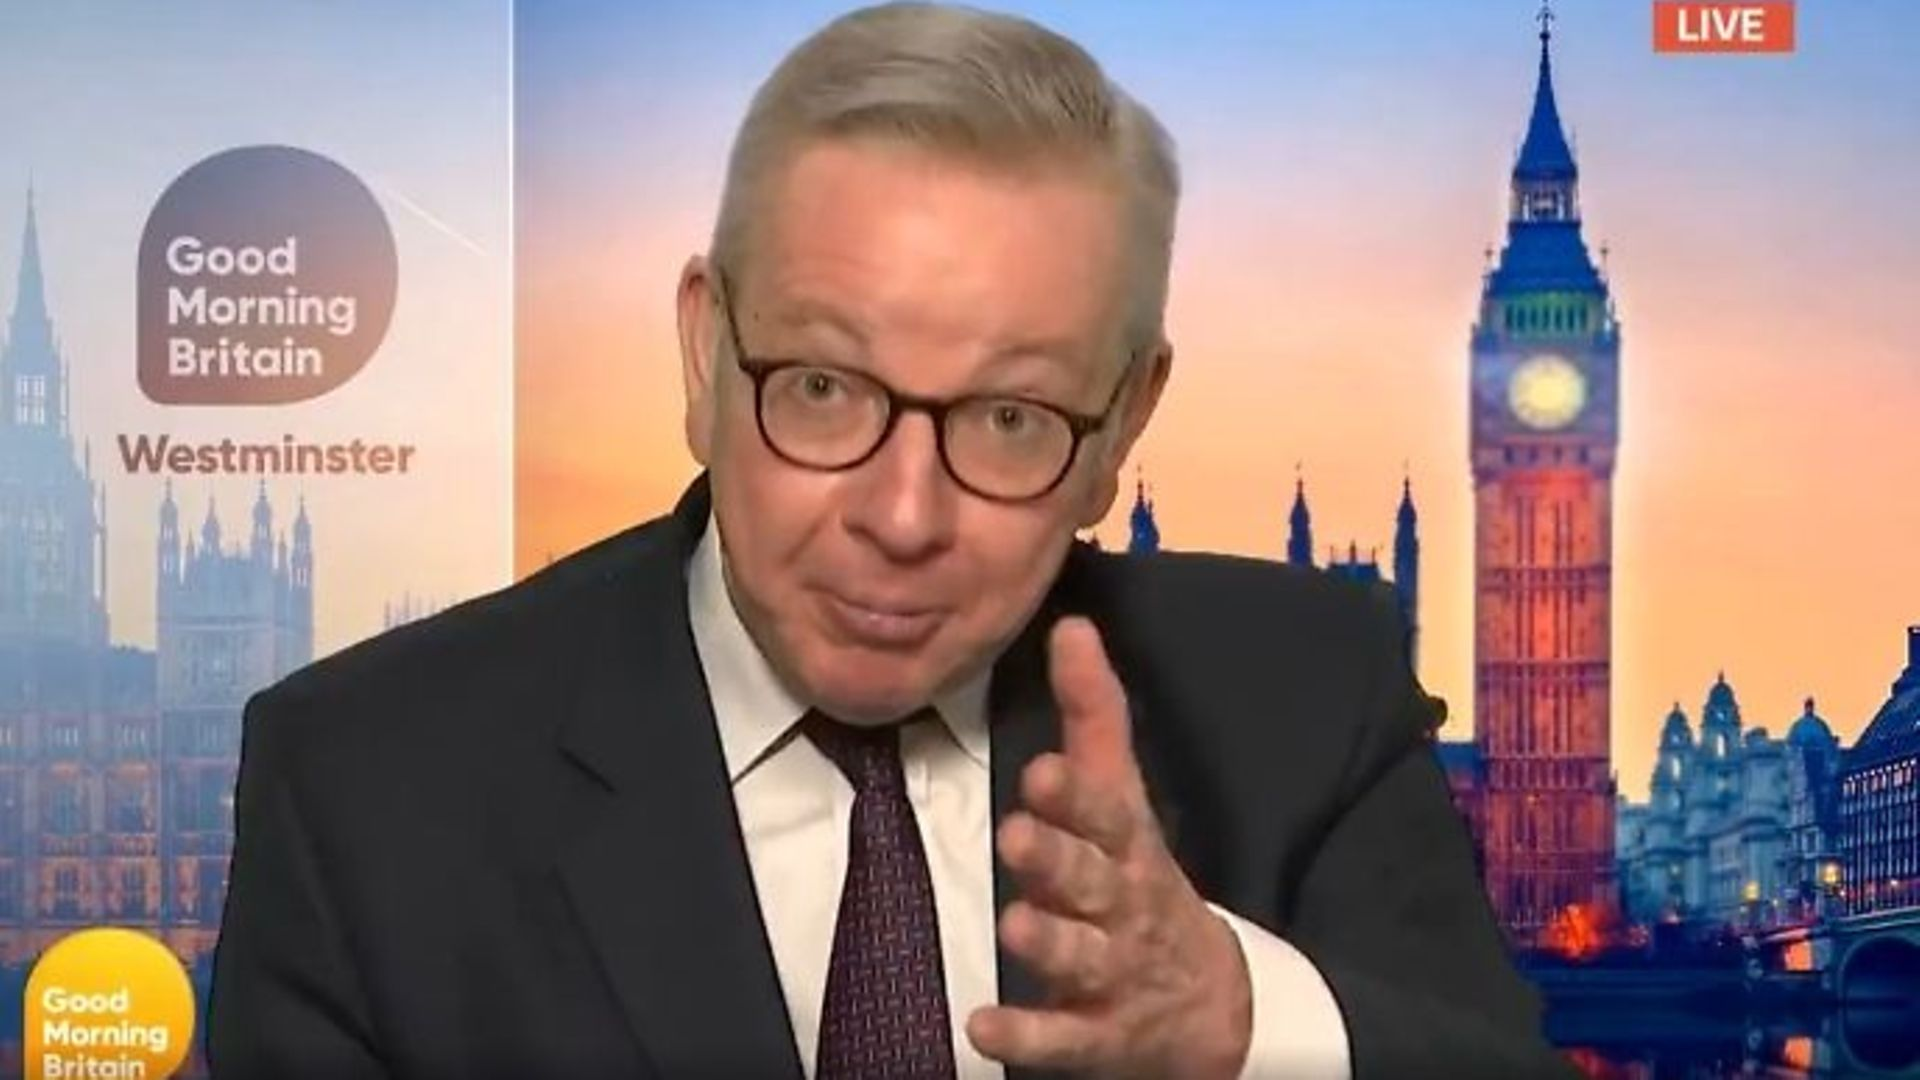 Michael Gove has been accused of going 'full Trump' after he challenged Good Morning Britain ratings - Credit: Twitter